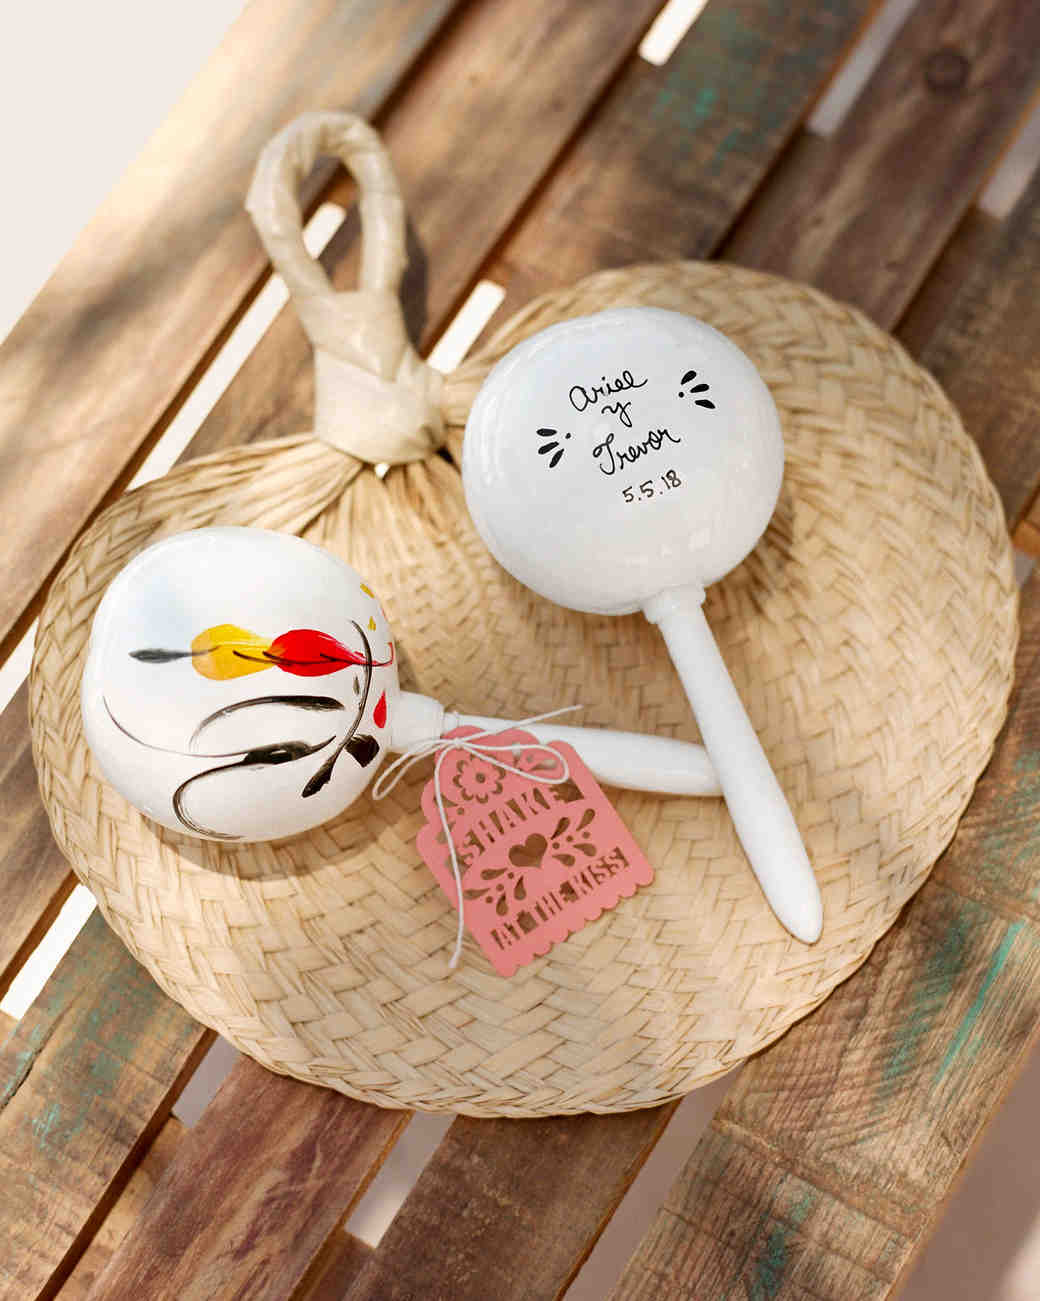 ariel trevor wedding tulum mexico personalized maracas